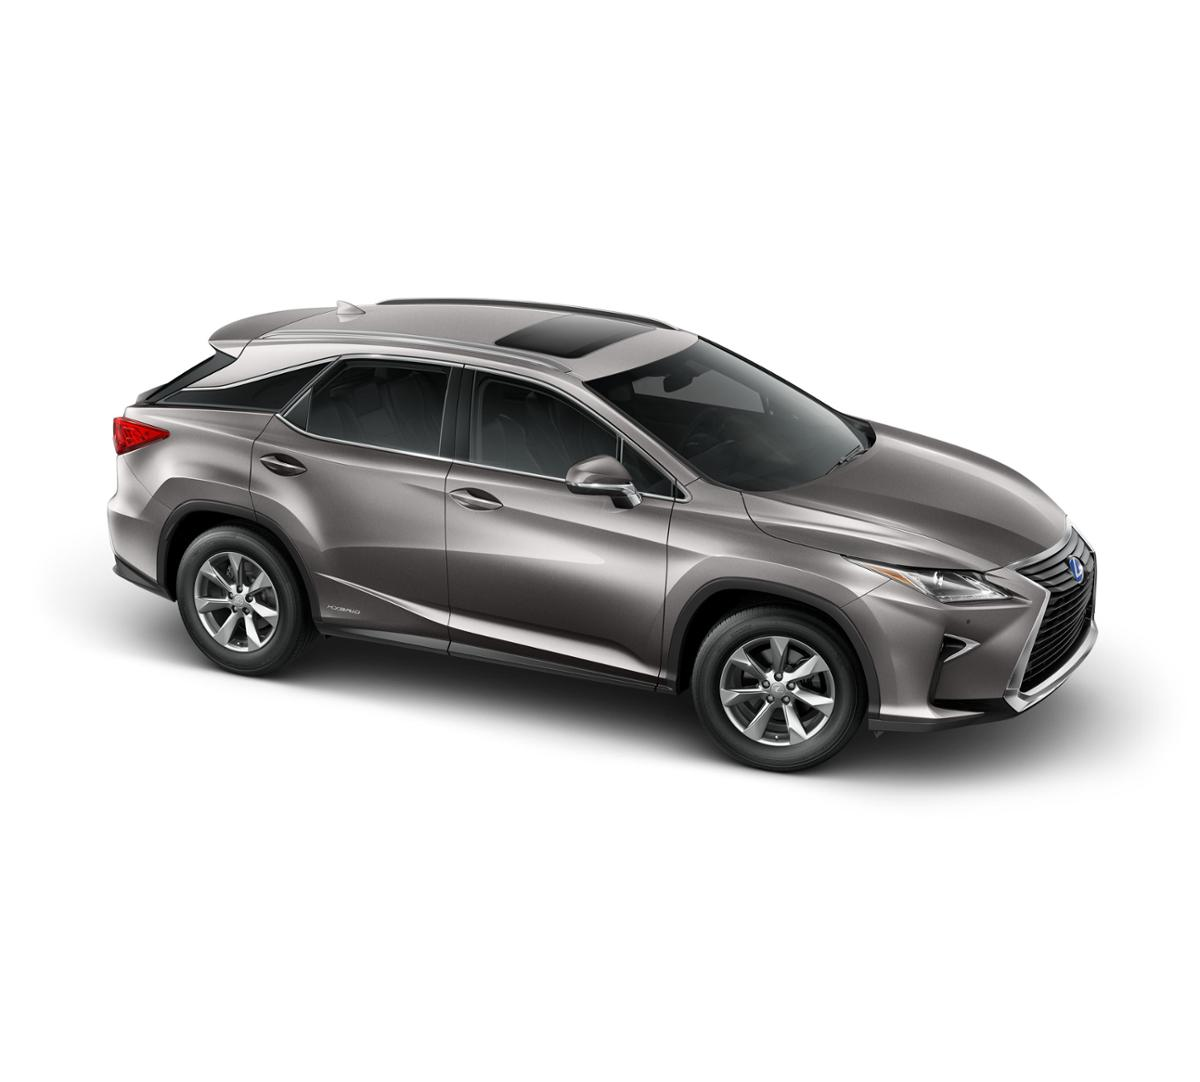 2017 Lexus RX 450h: New Suv for Sale in East Haven - 2T2BGMCAXHC013609